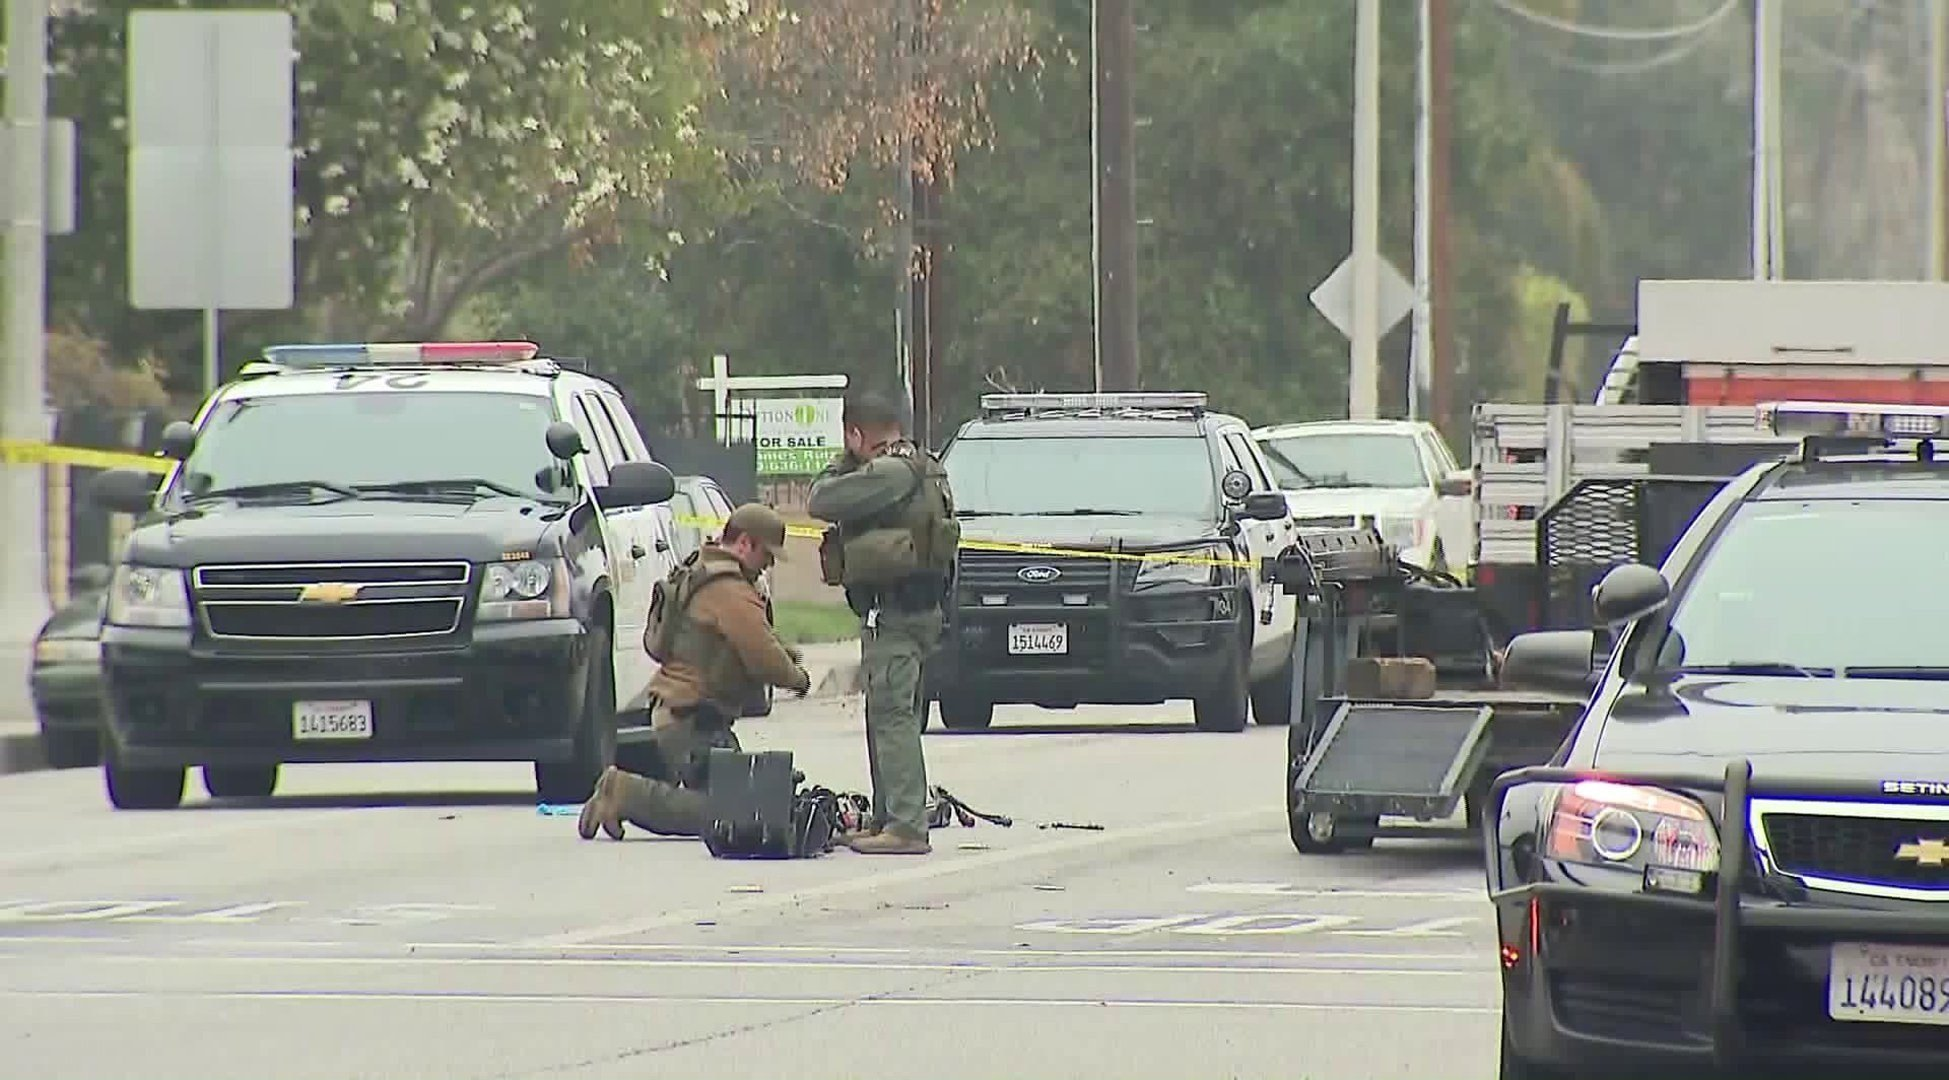 Law enforcement officers are shown near the scene of a barricaded suspect incident in Pomona